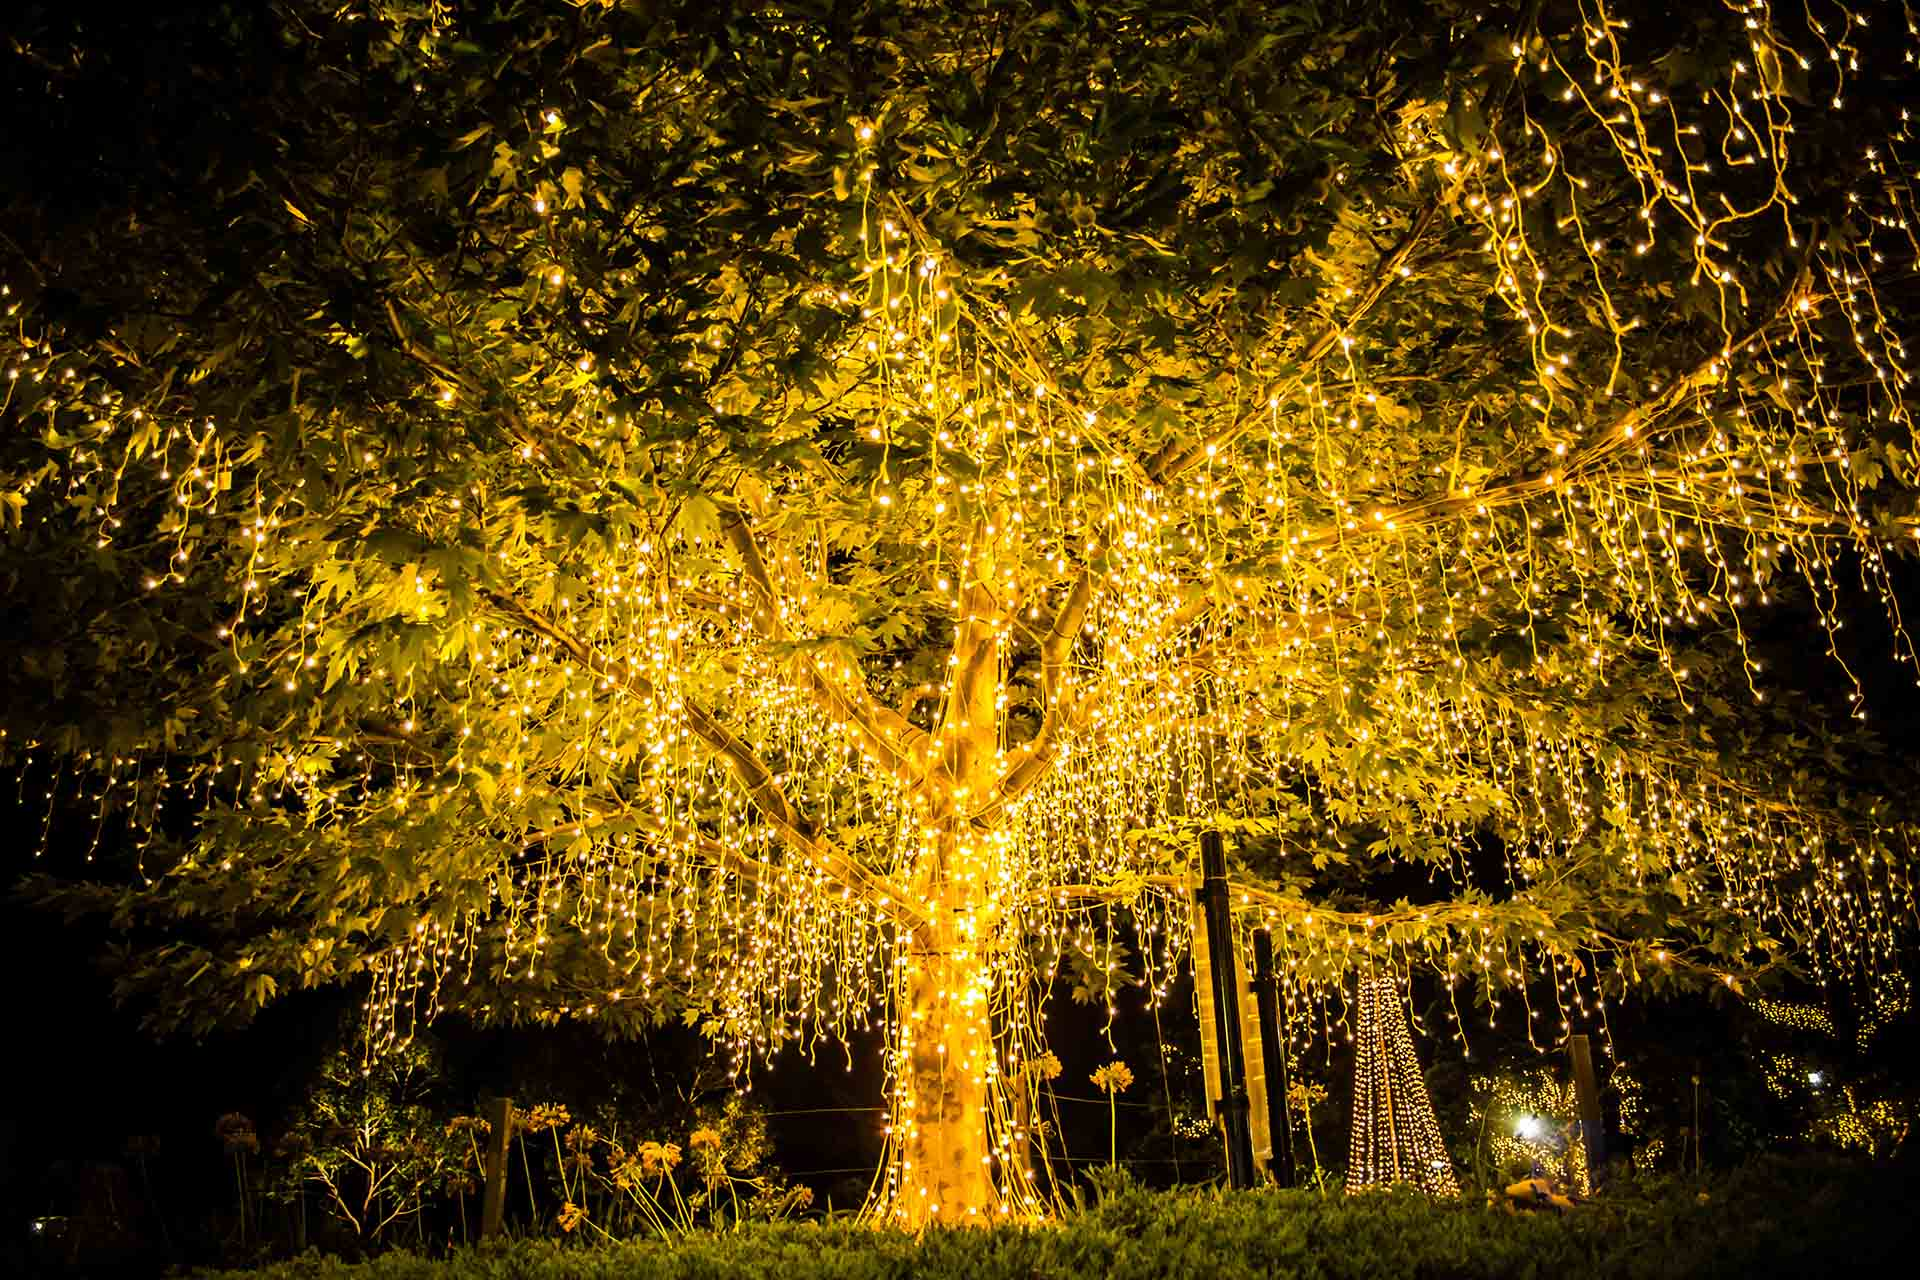 Beautiful tree covered in lights